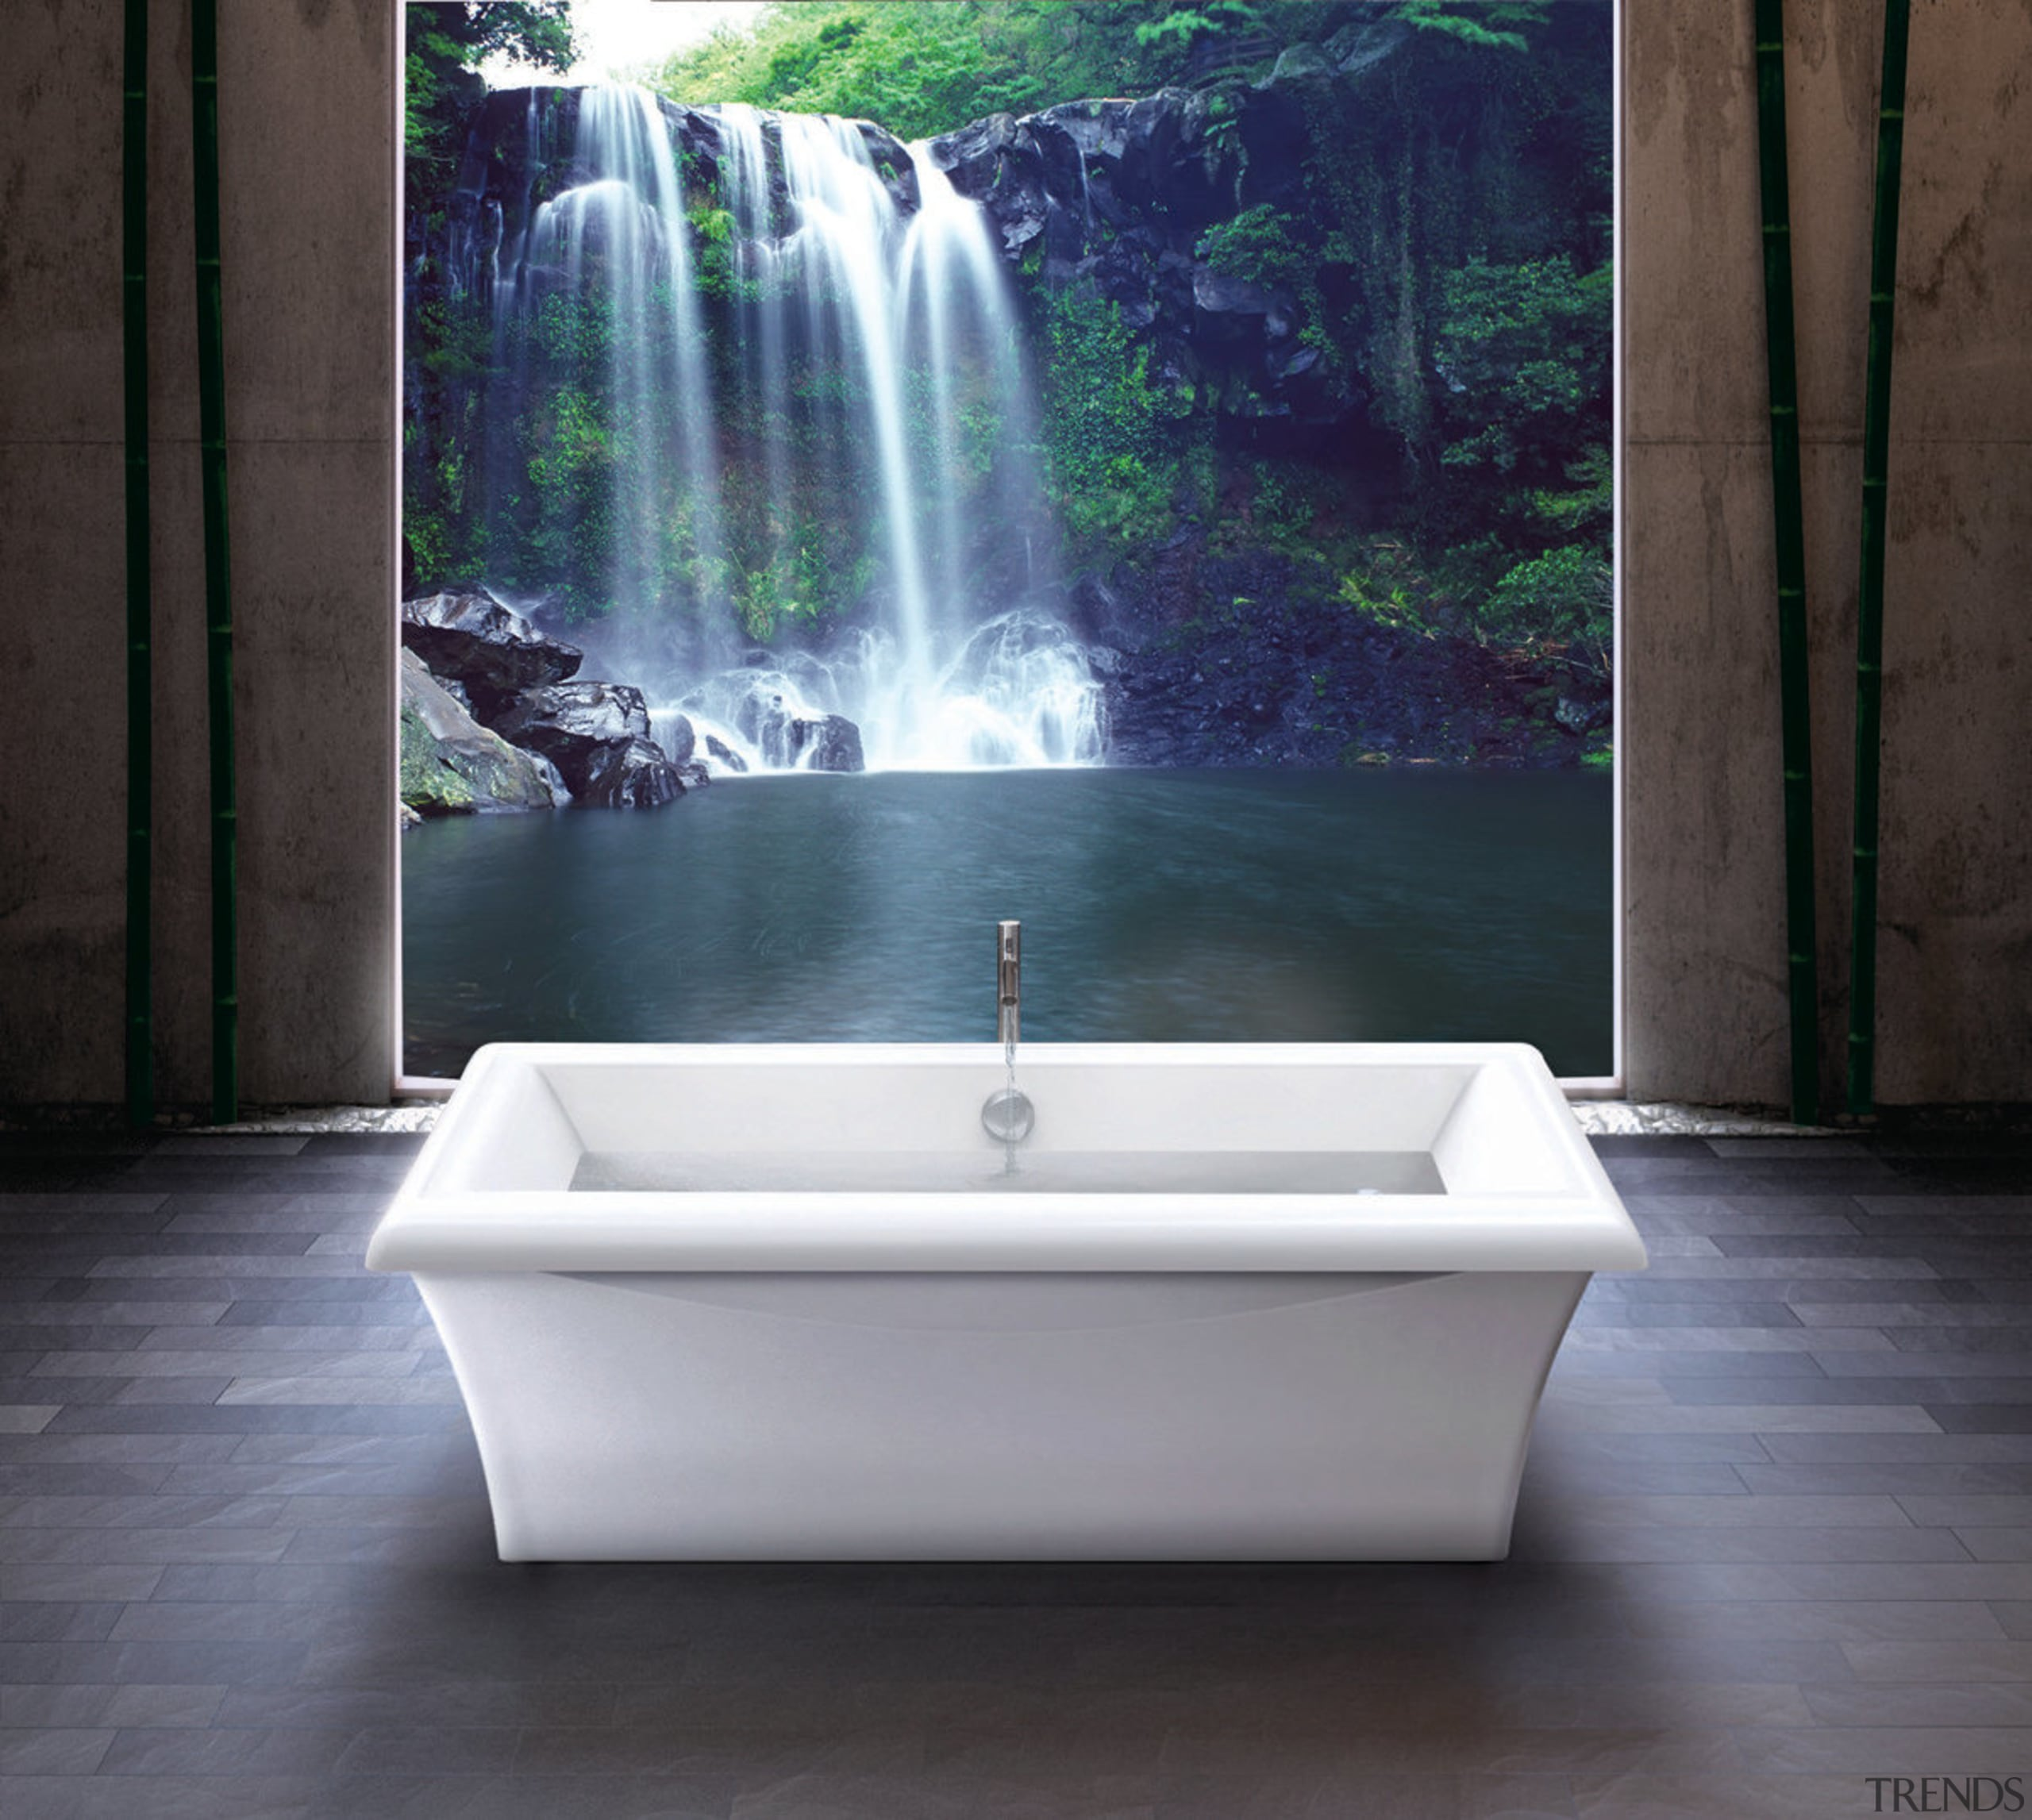 Resort-style bathing is all about the feel-good factor. bathtub, plumbing fixture, water, water feature, black, gray